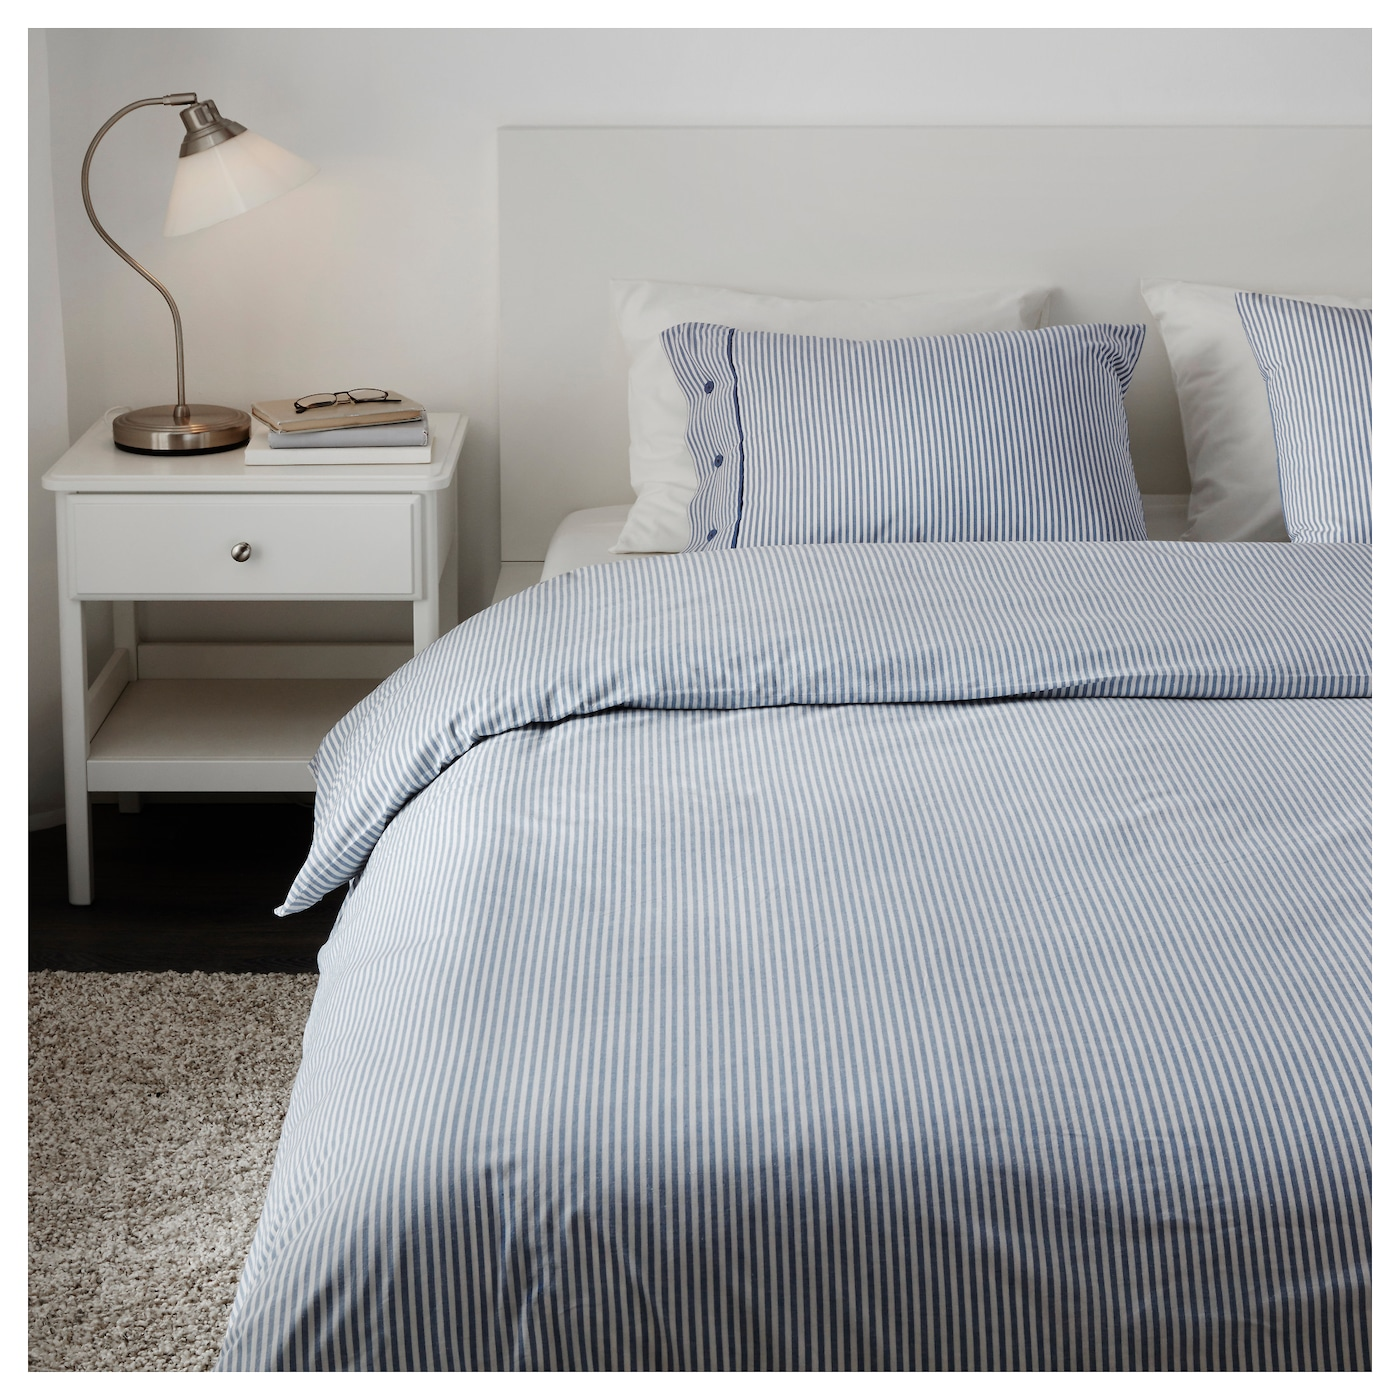 Design Ikea Bedding nyponros quilt cover and 4 pillowcases whiteblue 200x20050x80 cm ikea pillowcases